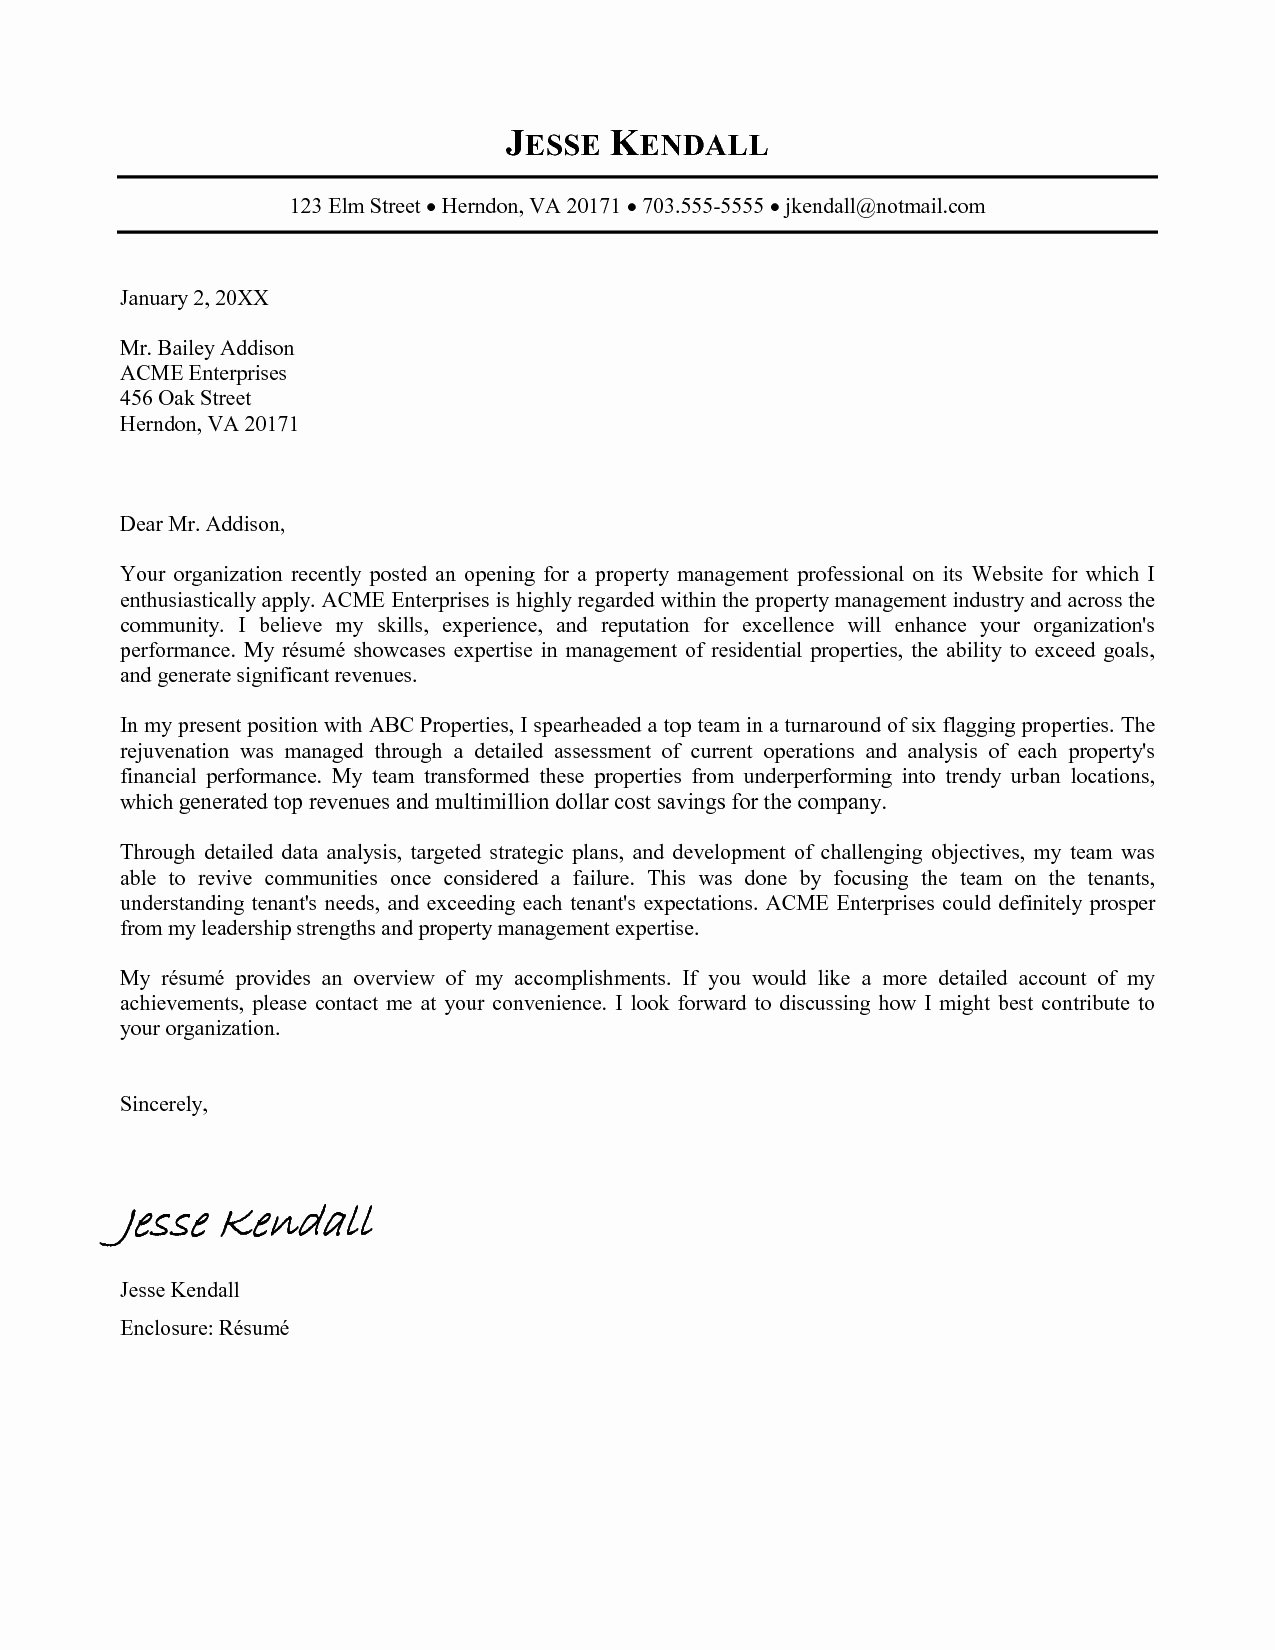 Cover Letter with Picture Template Lovely Standard Cover Letter Template Templates Station